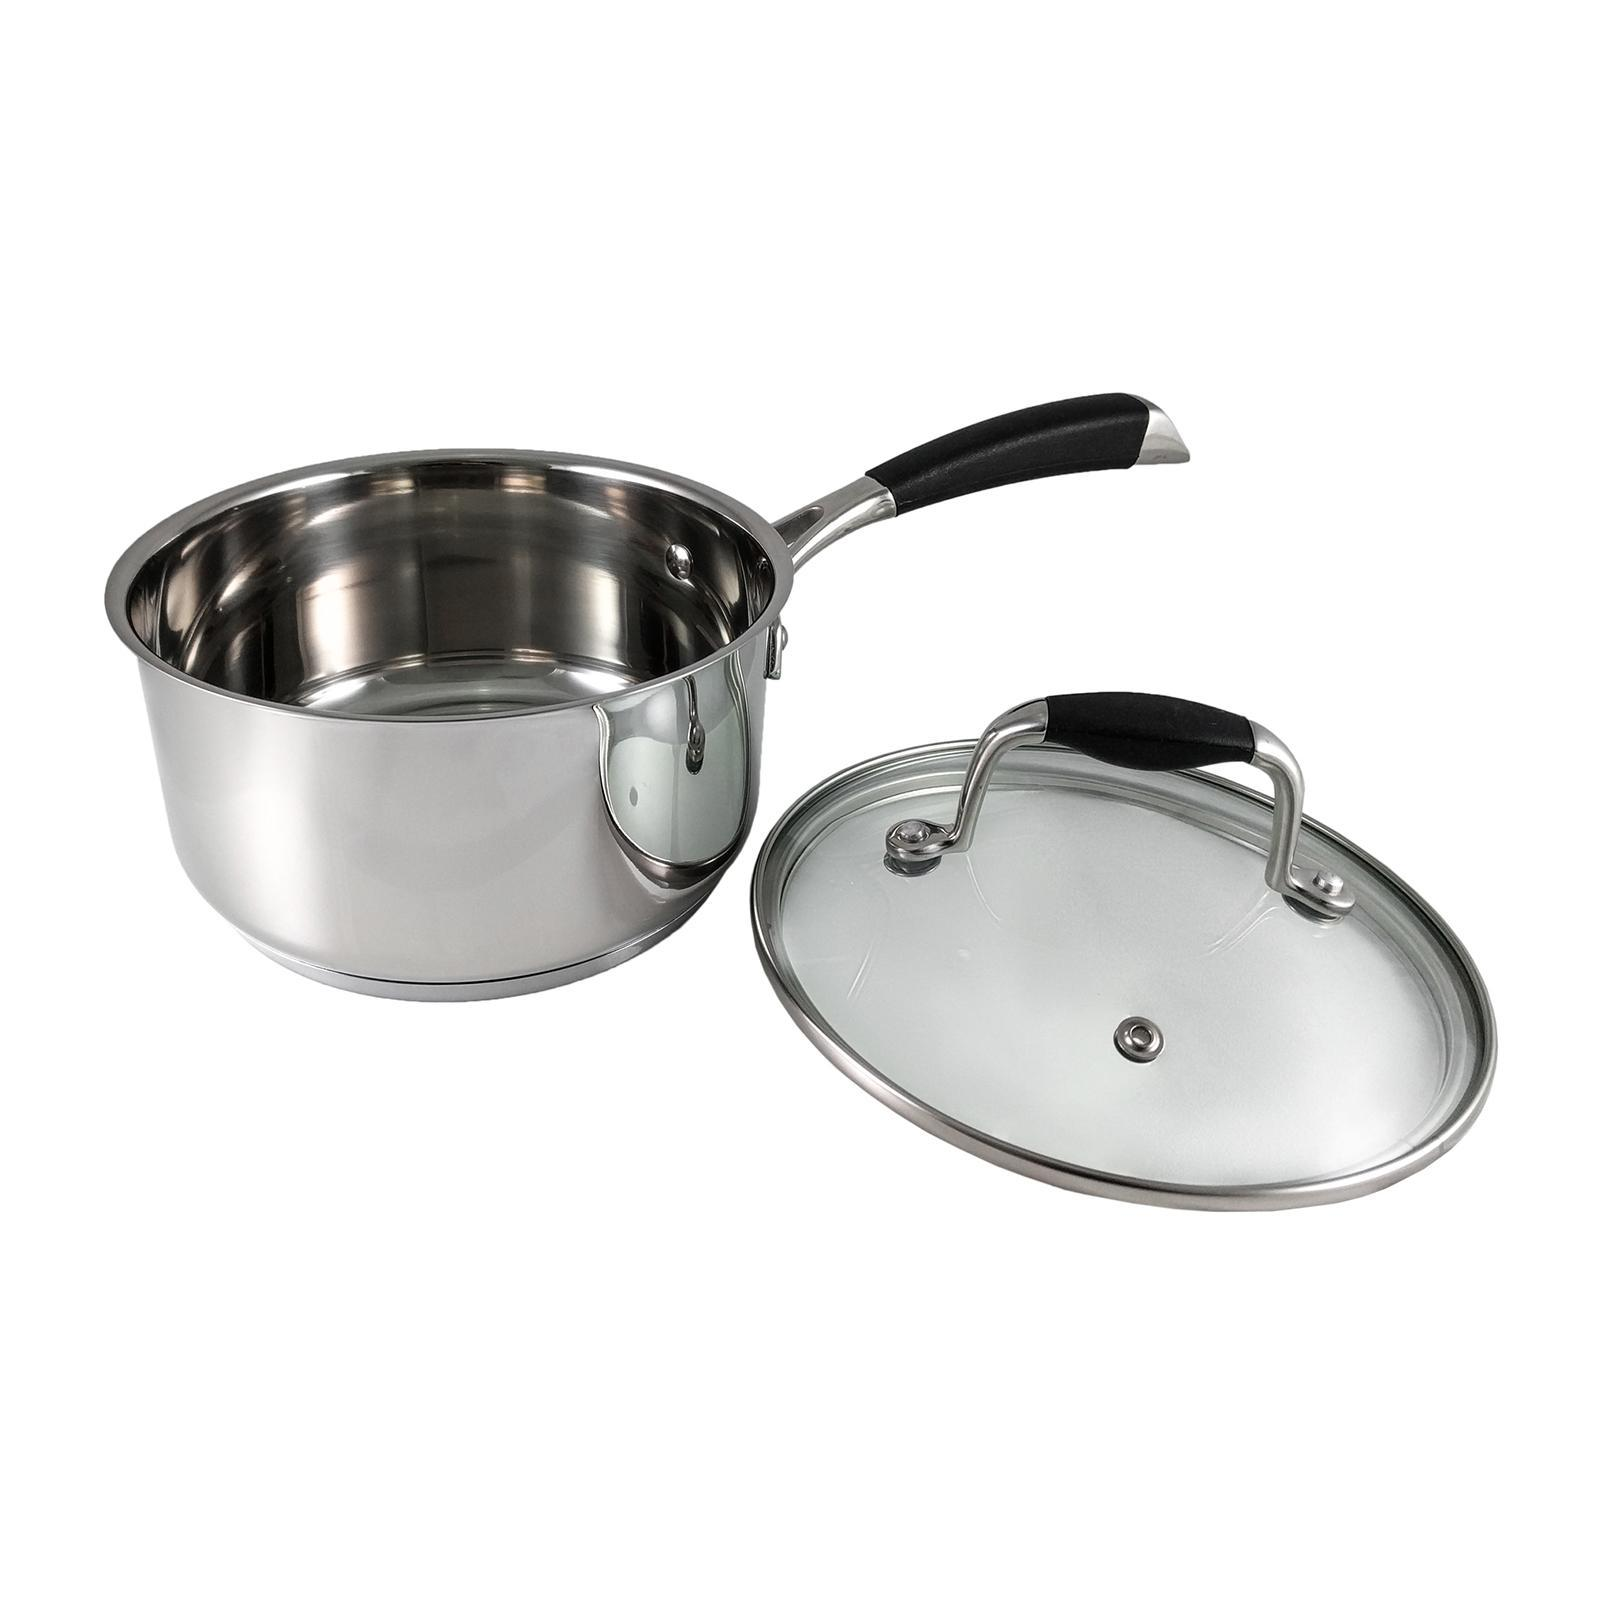 Amark Chef Delight Tri-Ply Stainless Steel Saucepan 16cm